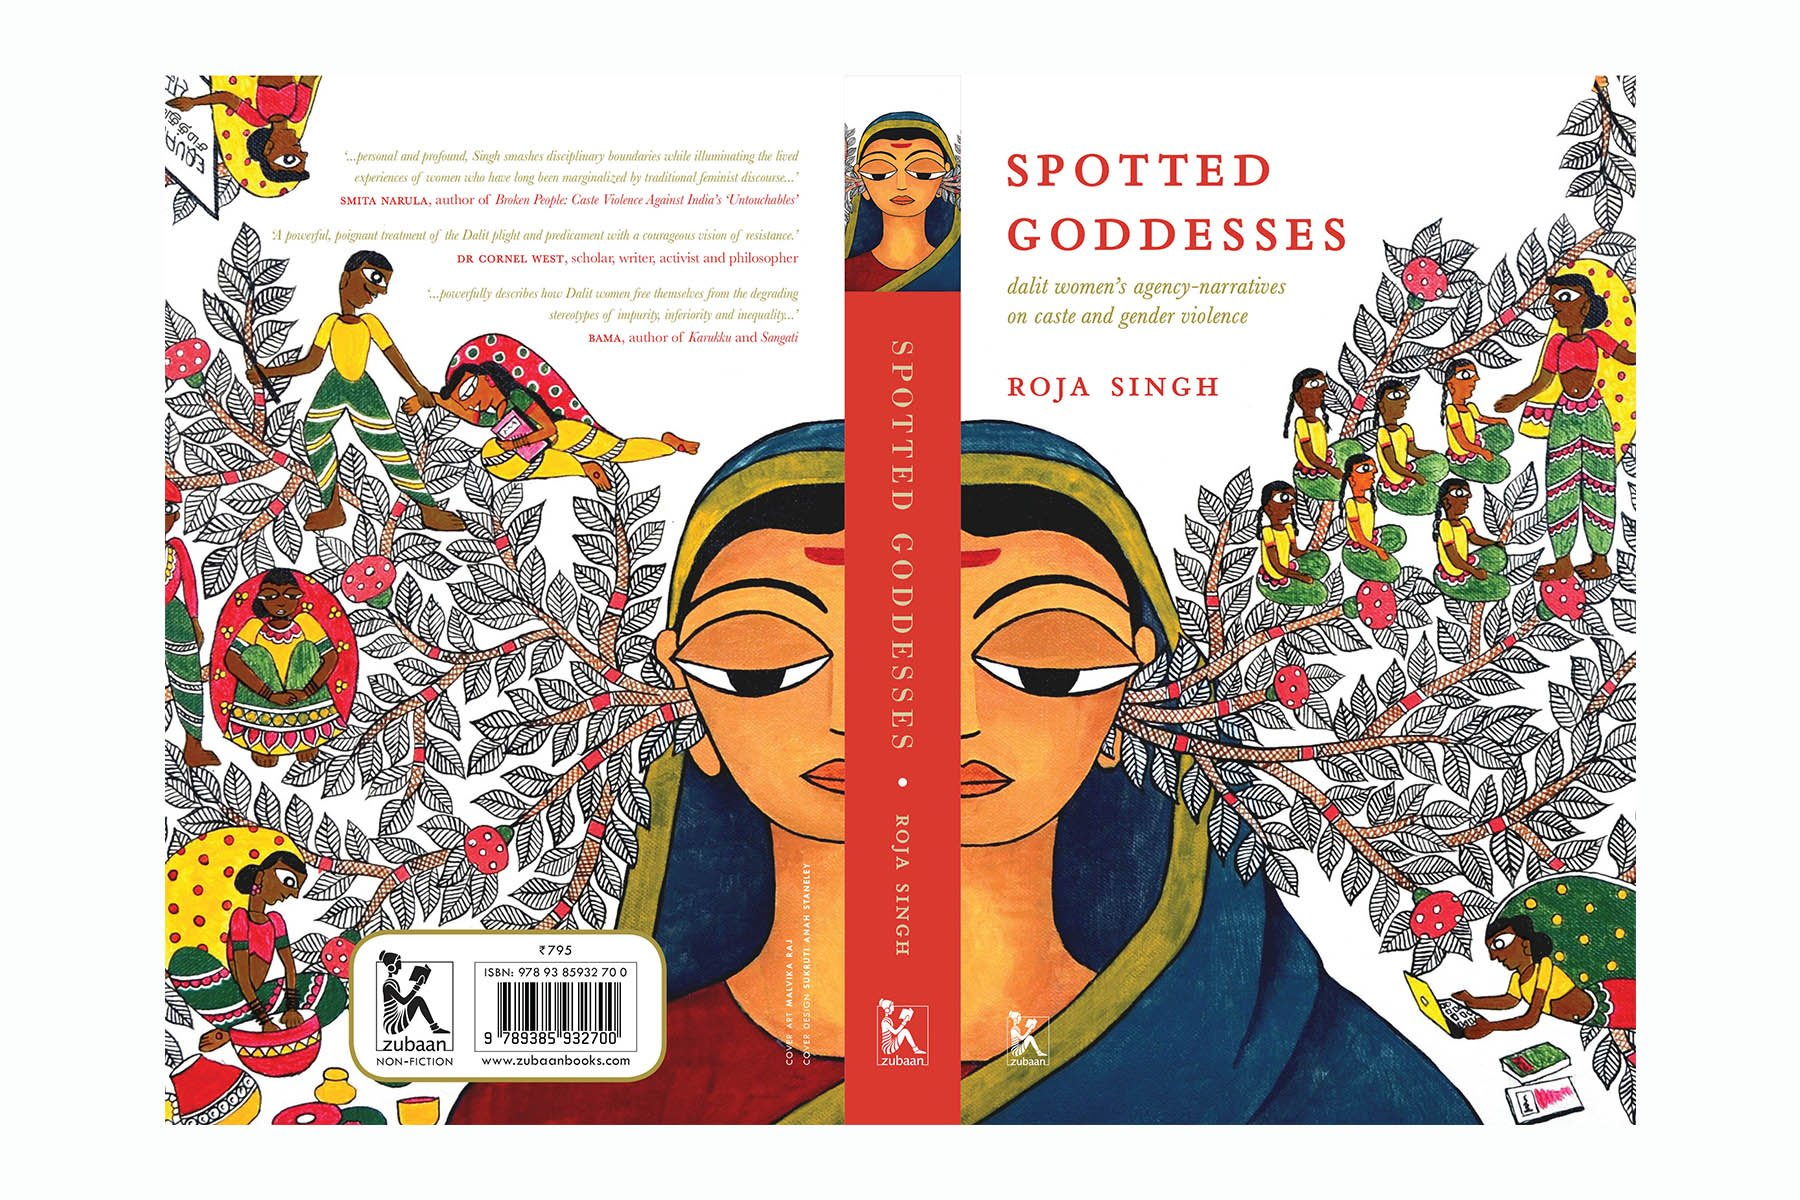 "Zubaan Books on Twitter: ""New in Zubaan #nonfiction: 'Spotted Goddesses:  #DalitWomen's Agency-Narratives on Caste and Gender Violence' by  #RojaSingh, a consummate analysis of the power structures that shape the  foundation of caste"